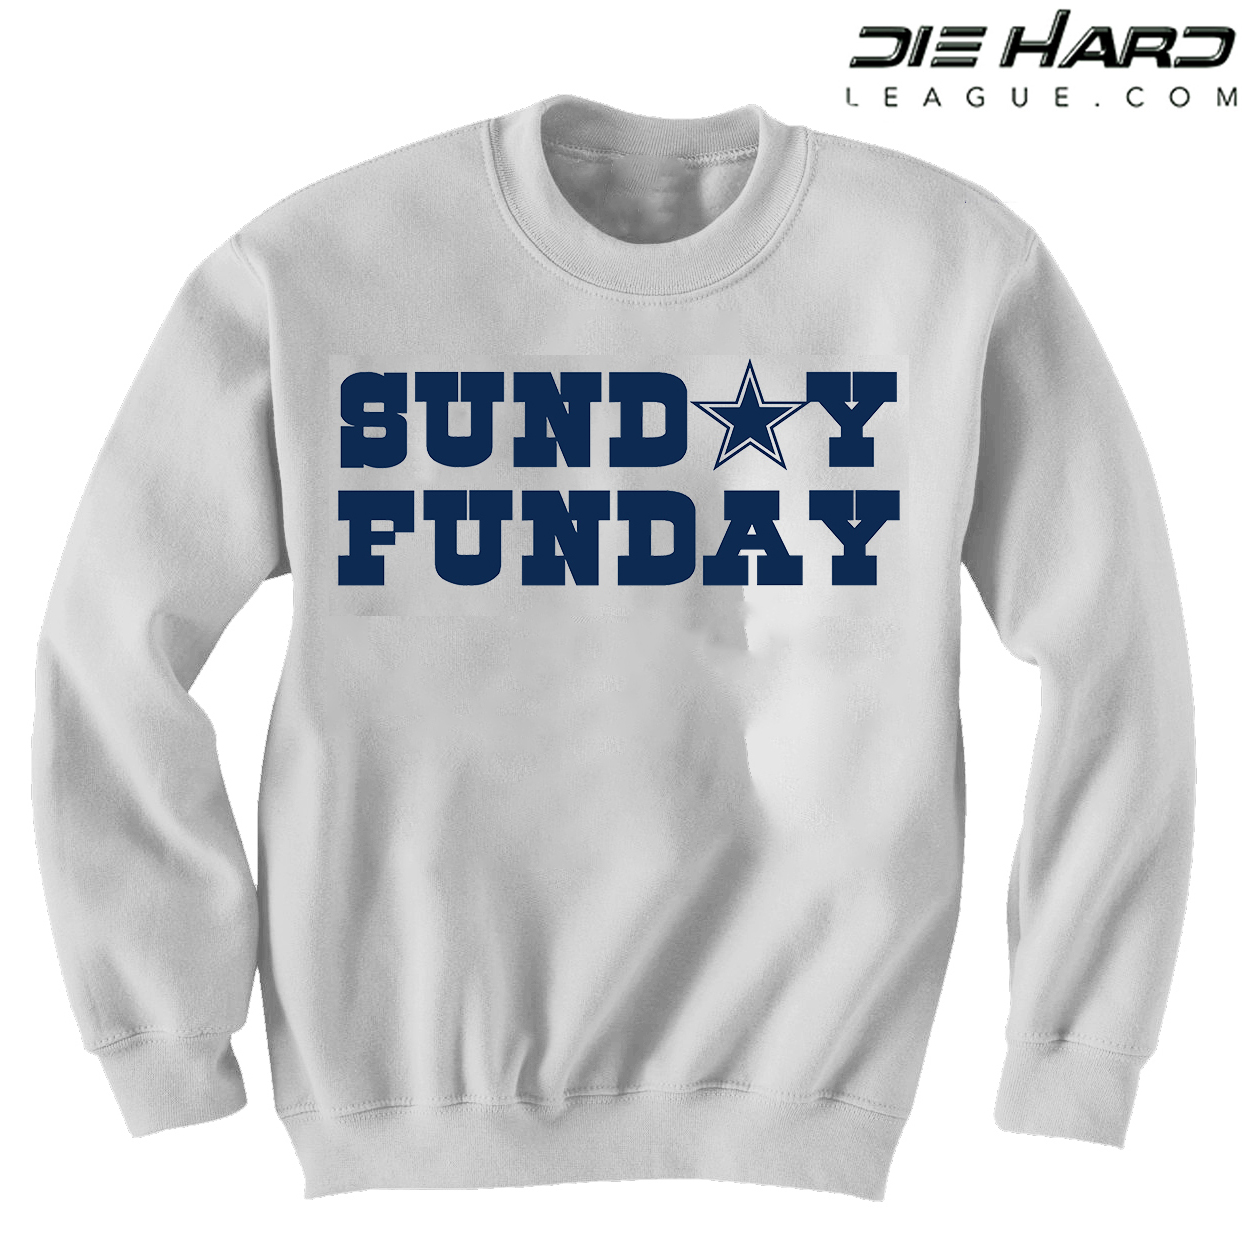 reputable site 8800d d3079 Dallas Cowboys Sweater - Sunday Funday White Sweatshirt